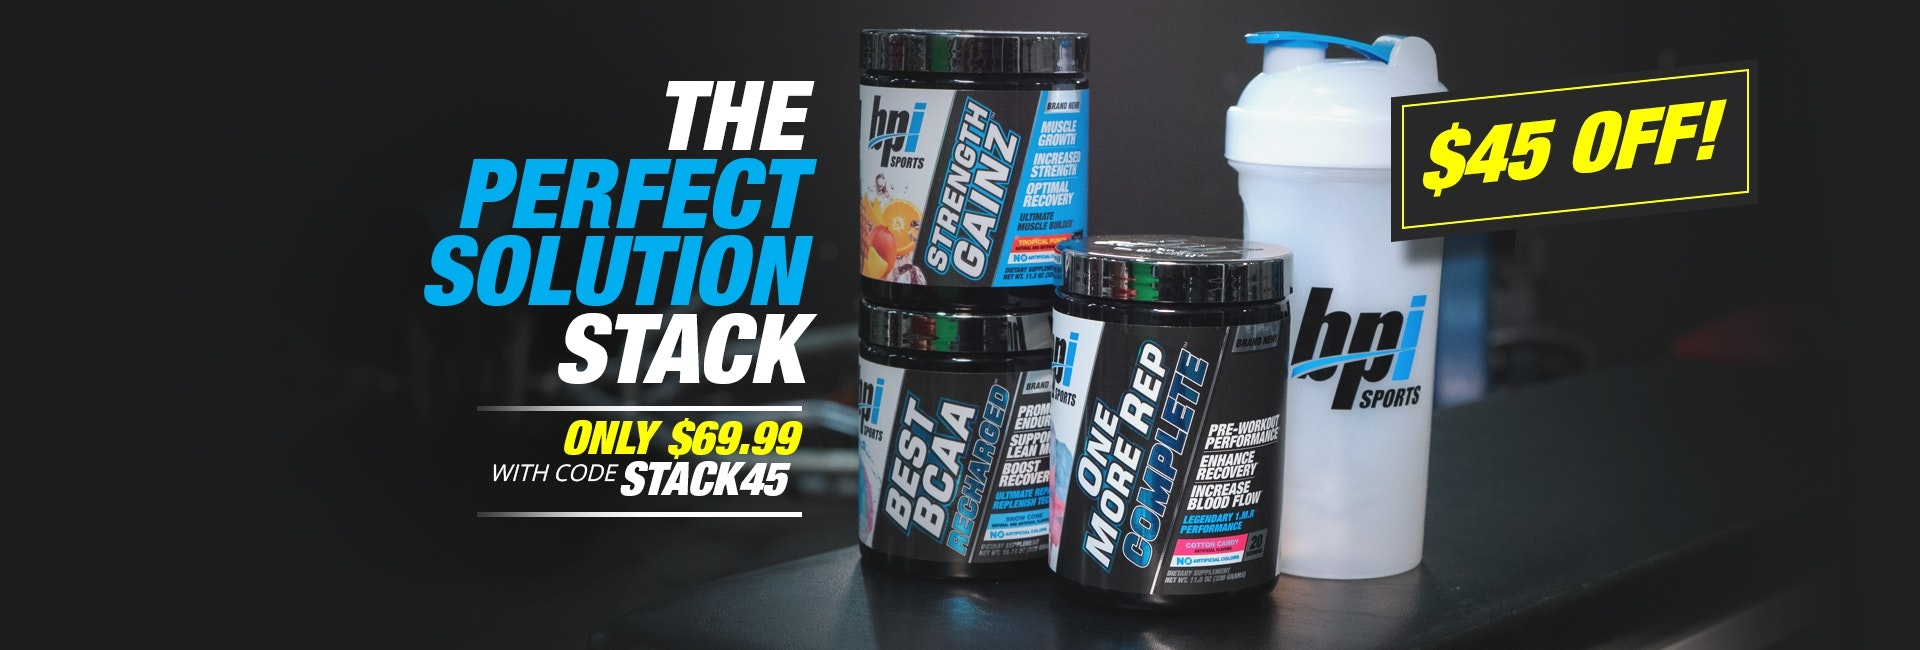 The Perfect Solution Stack - Save $45 by using code STACK45 at checkout!